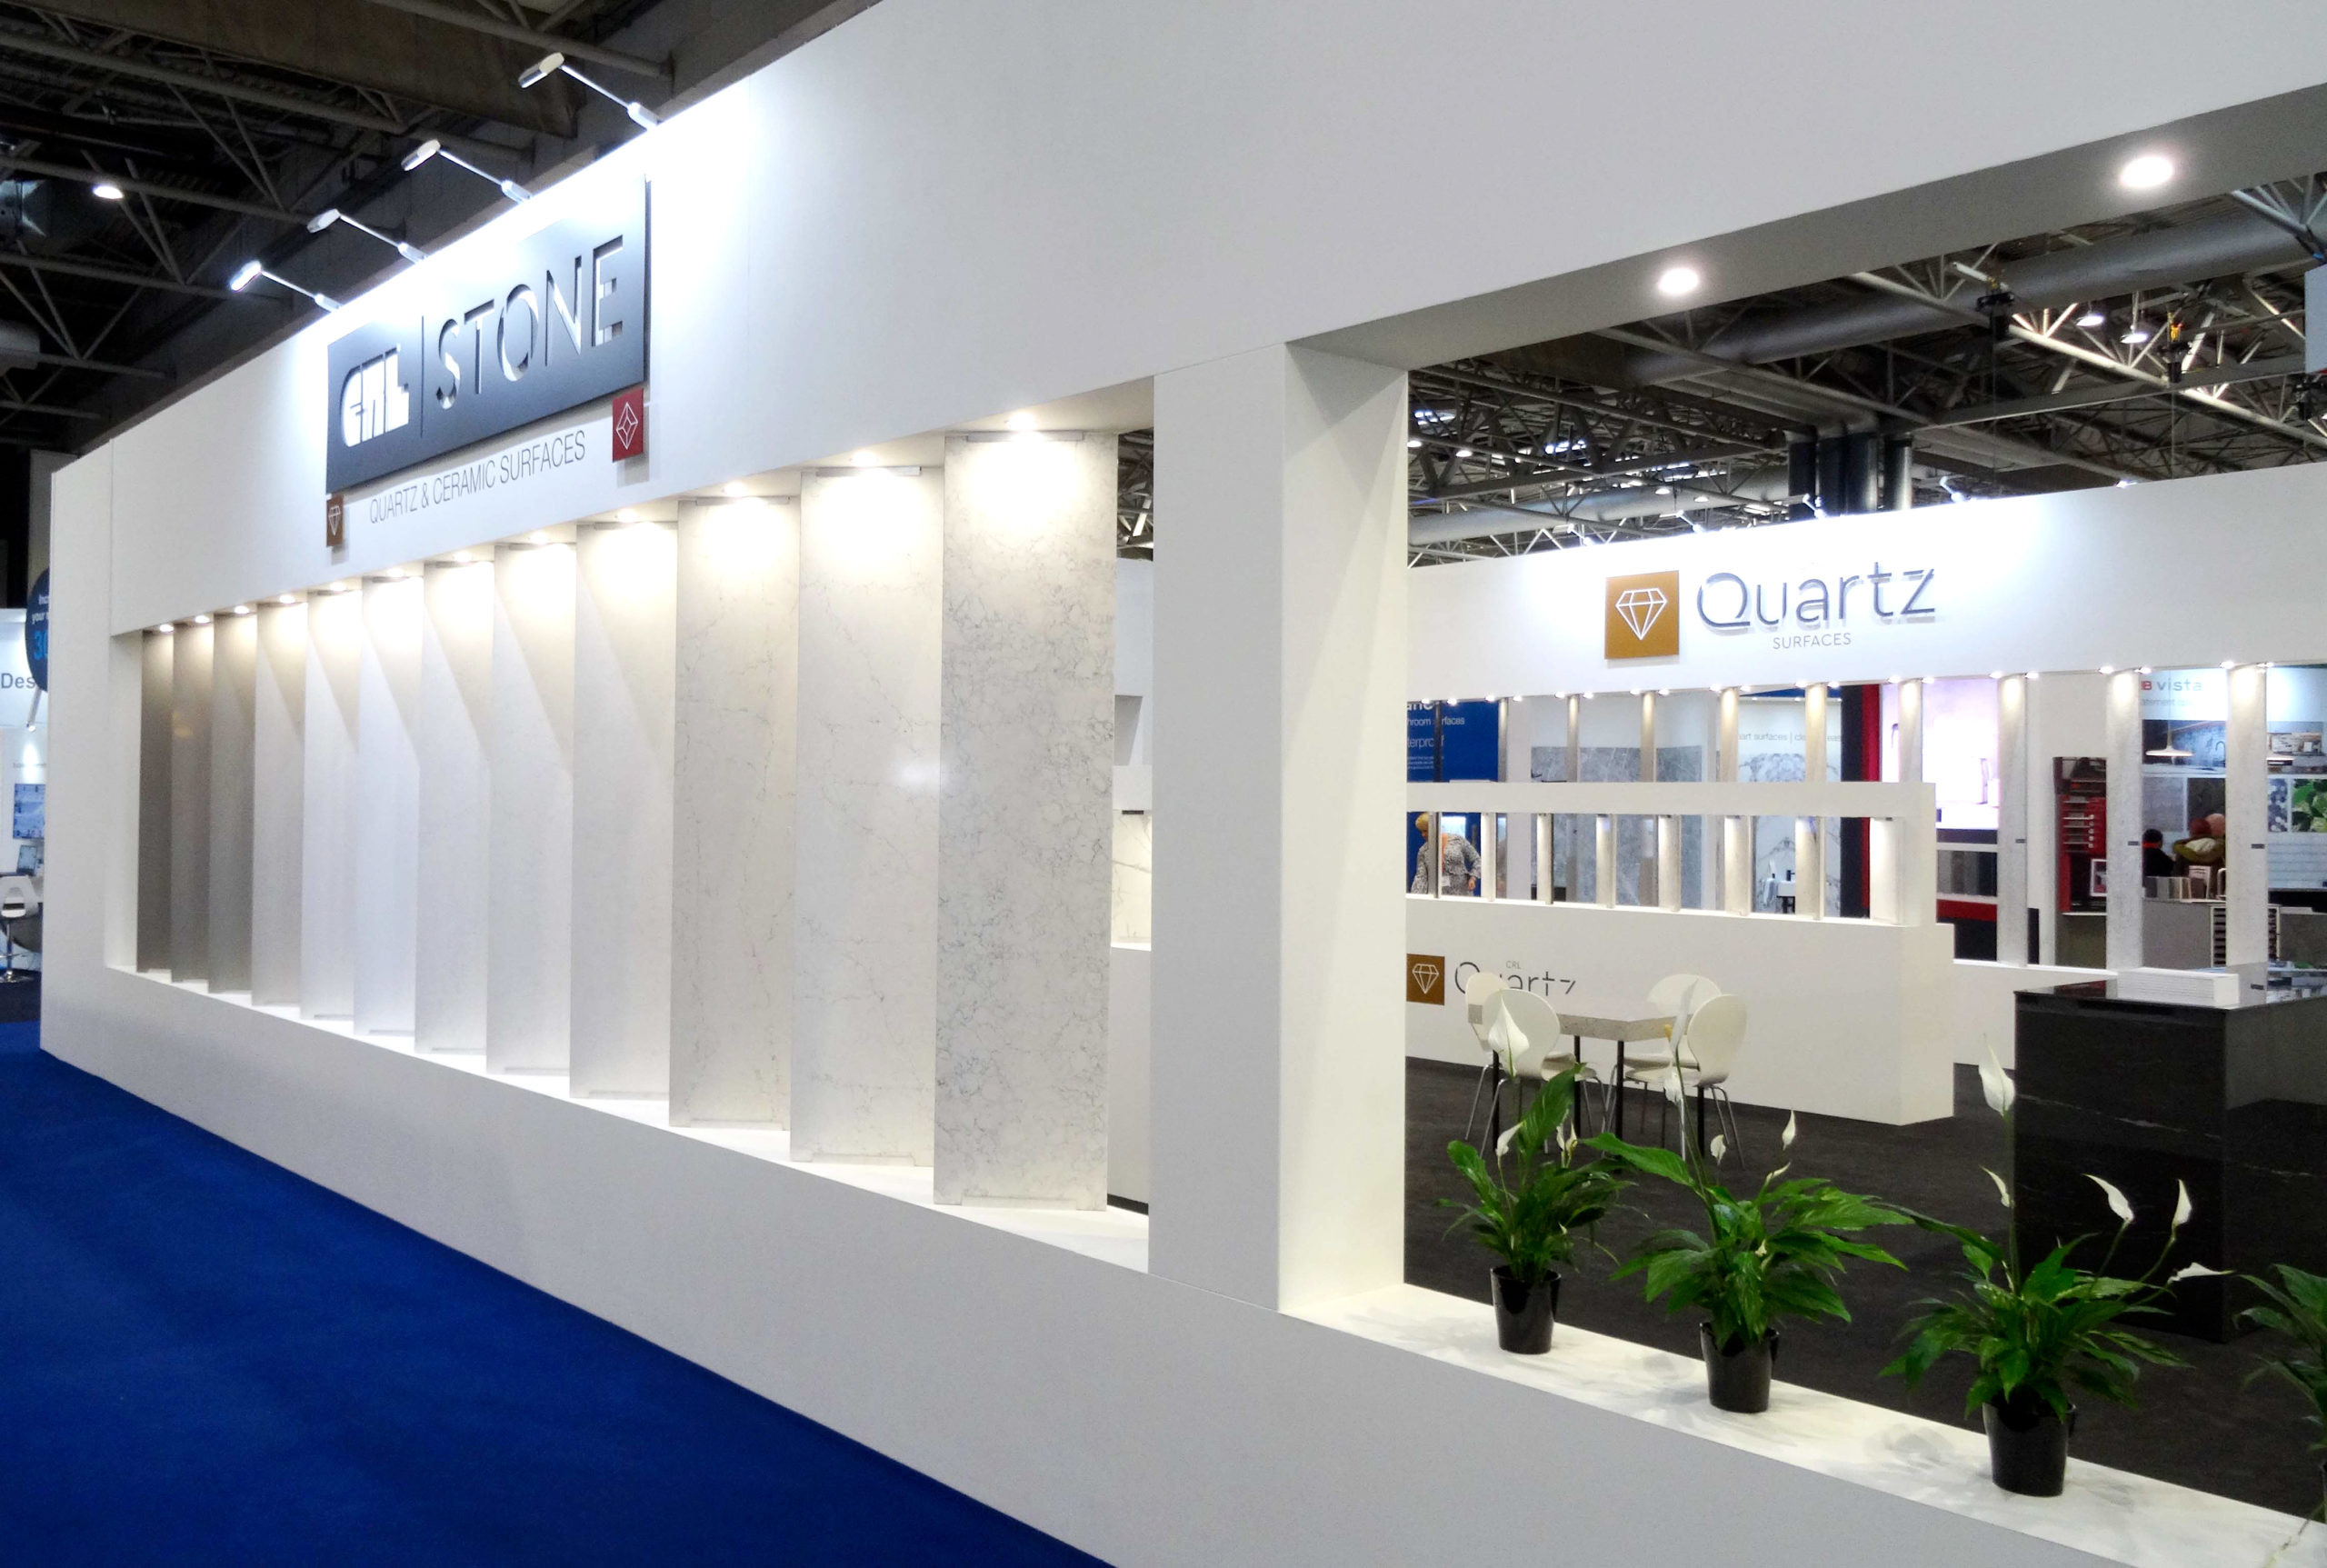 CRL Stone stand at kbb 2020